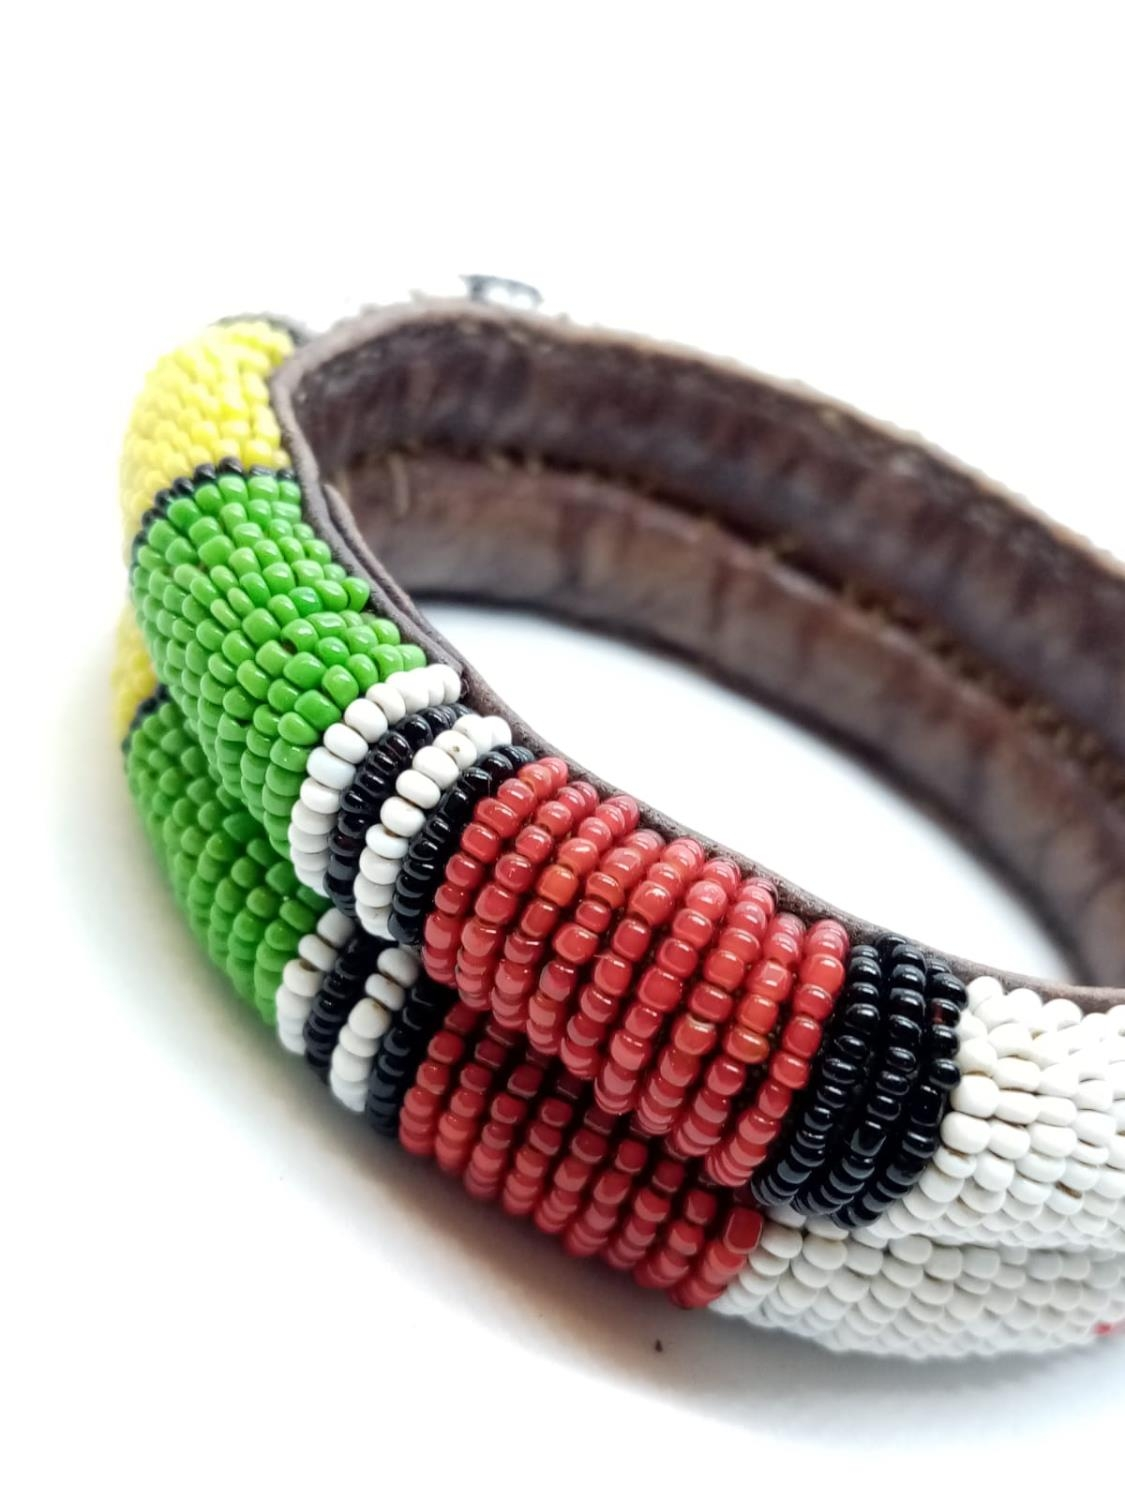 Native American hand woven leather BANGLE. - Image 3 of 4